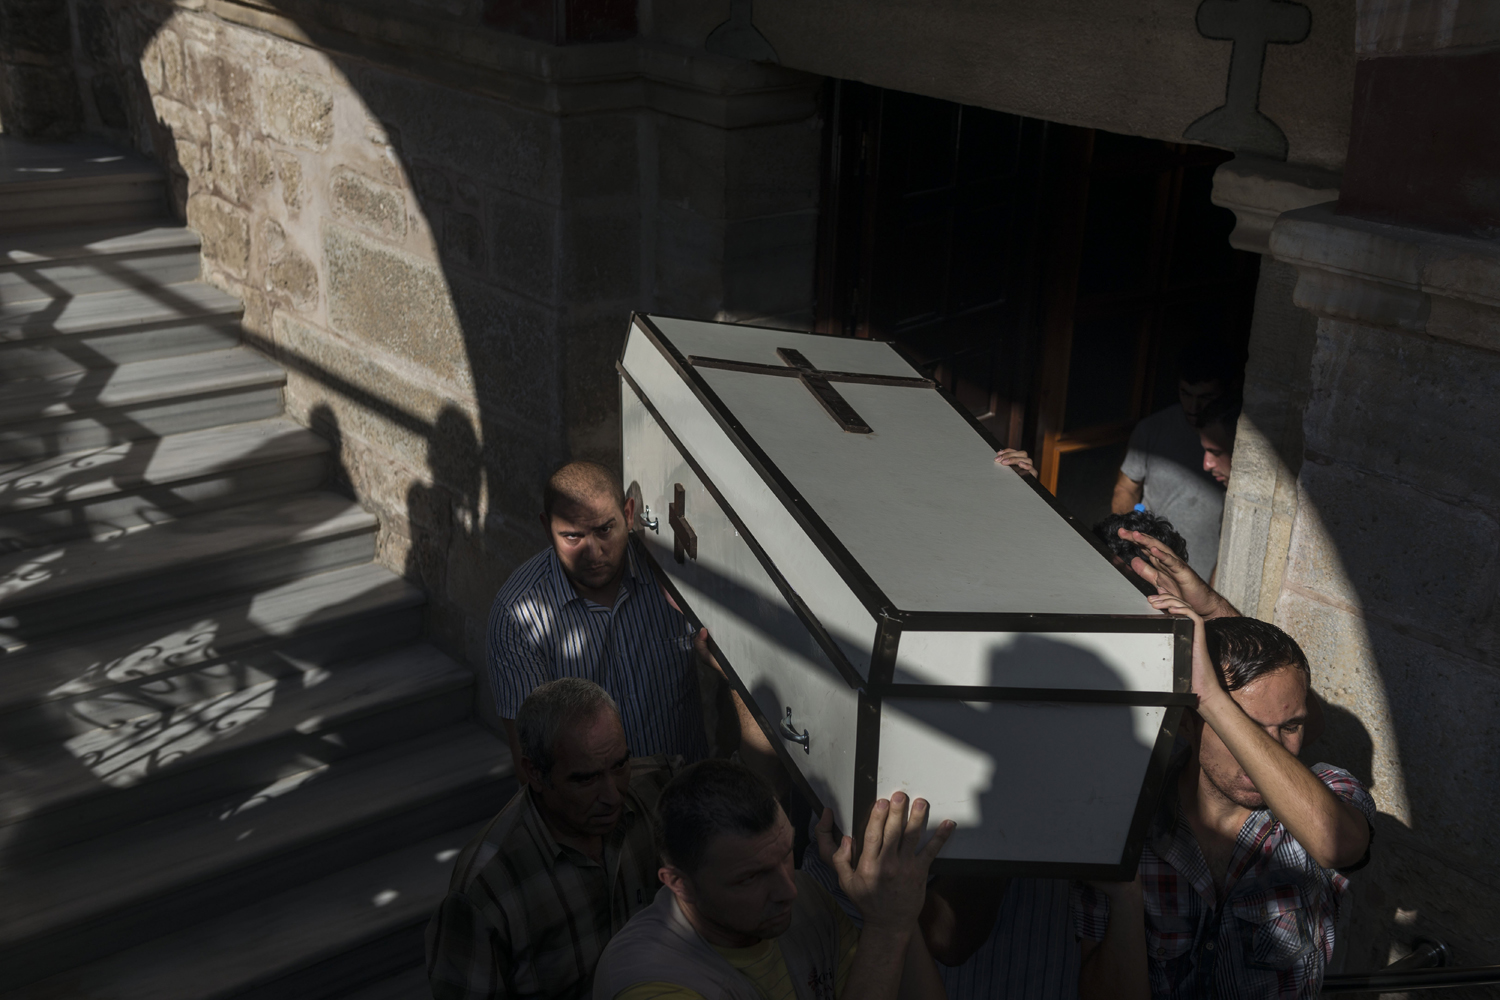 Jul. 27, 2014. Relatives of Jalila Ayyad, a Christian woman who was reportedly killed during an airstrike, carry her coffin during her funeral at the Church of Saint Porphyrius in Gaza City.